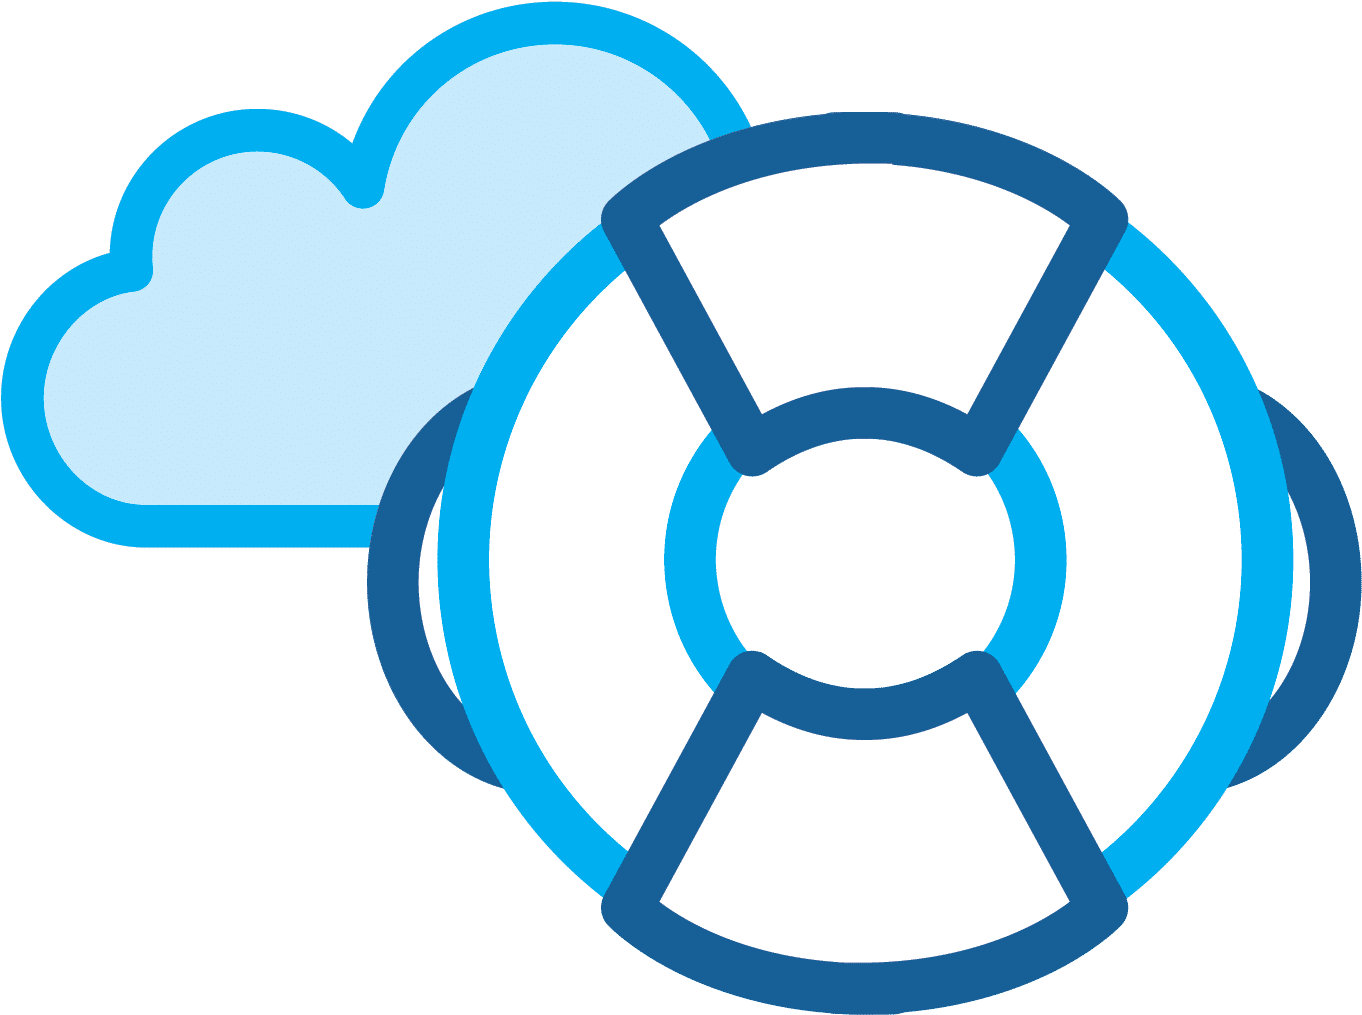 Vmware Disaster Recovery Solutions Cloud Dr Logo Clipart.